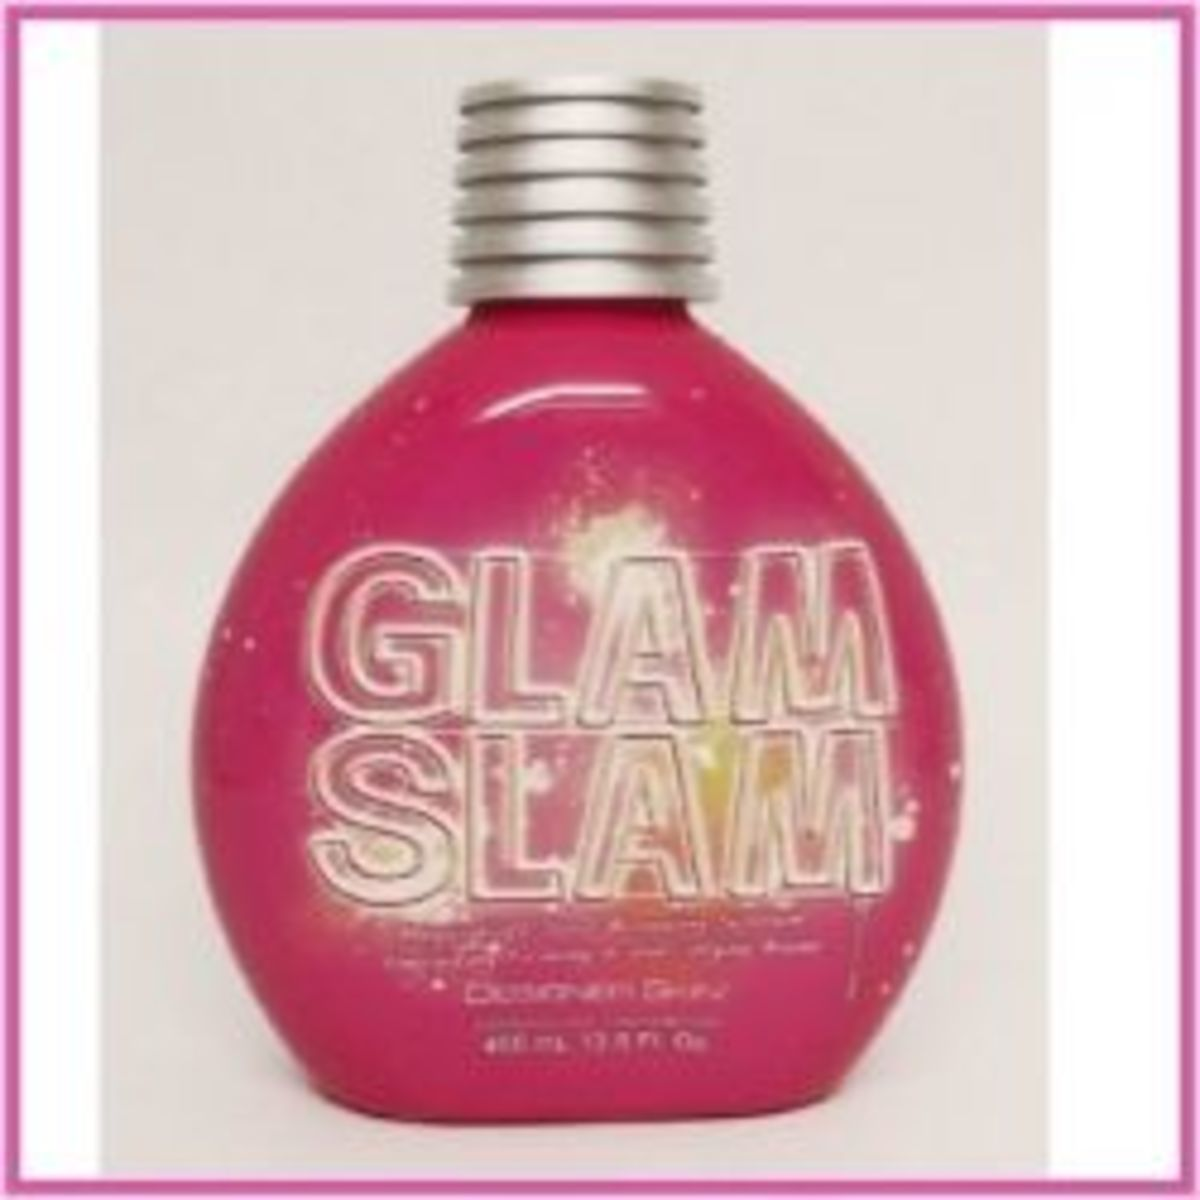 Best Tanning Bed Lotions and Tips